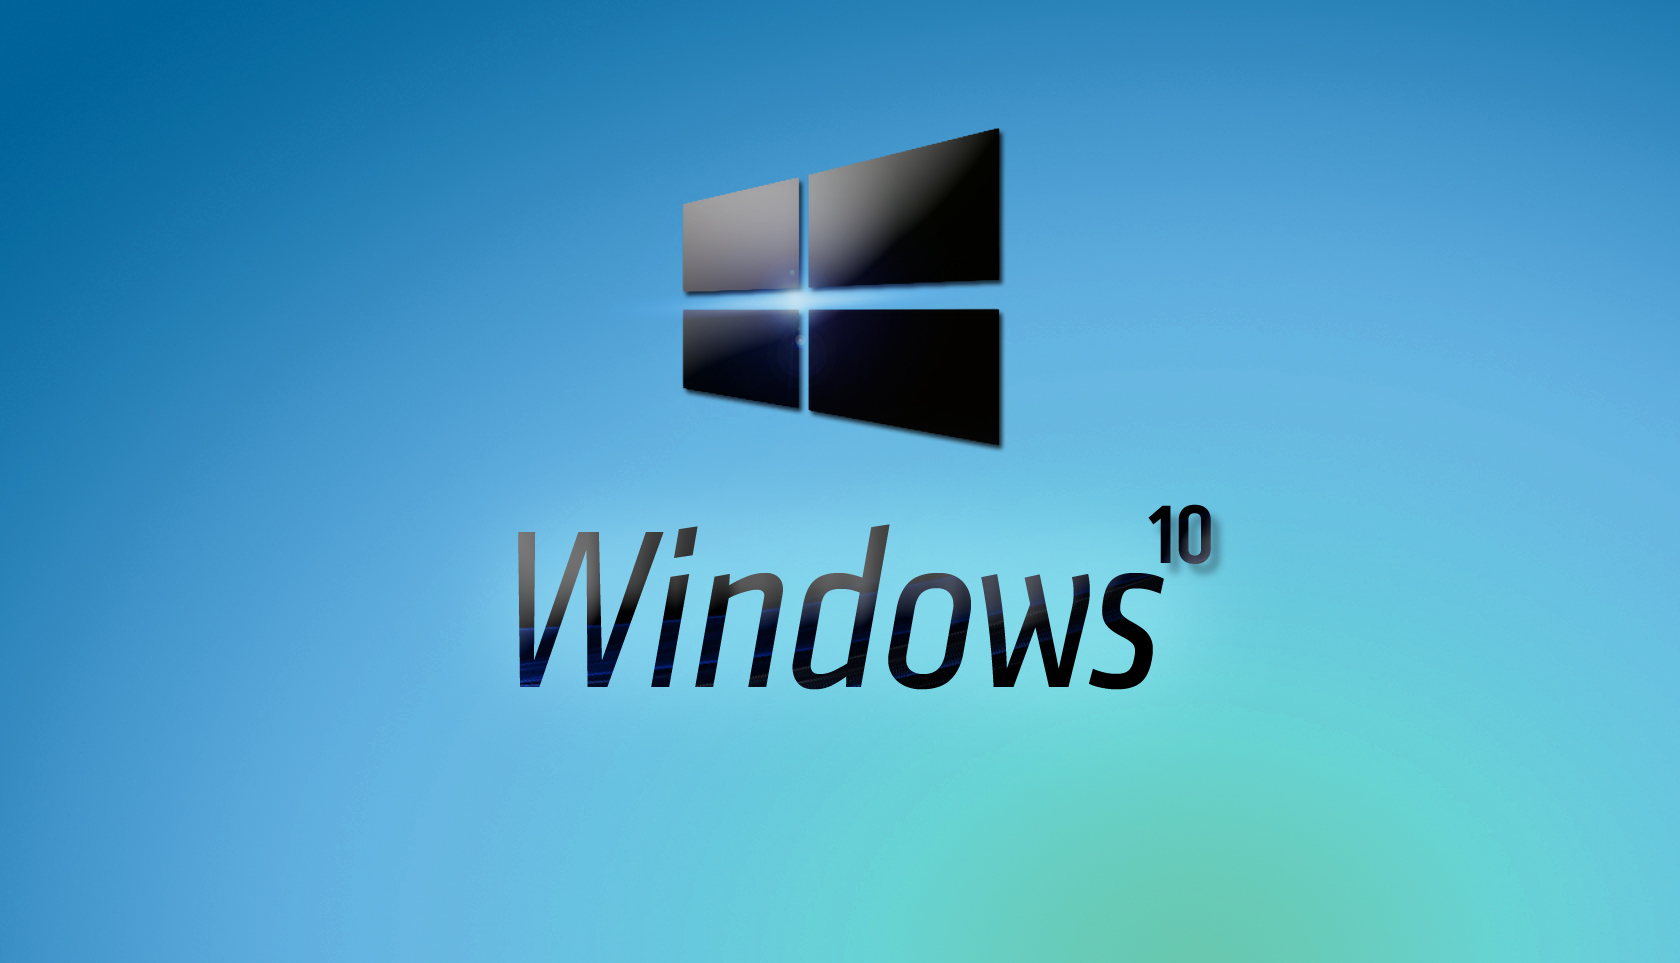 10 New Windows 8 Wallpaper Hd 3d For Desktop Full Hd 1920: Zembii Wallpaper And Background Image